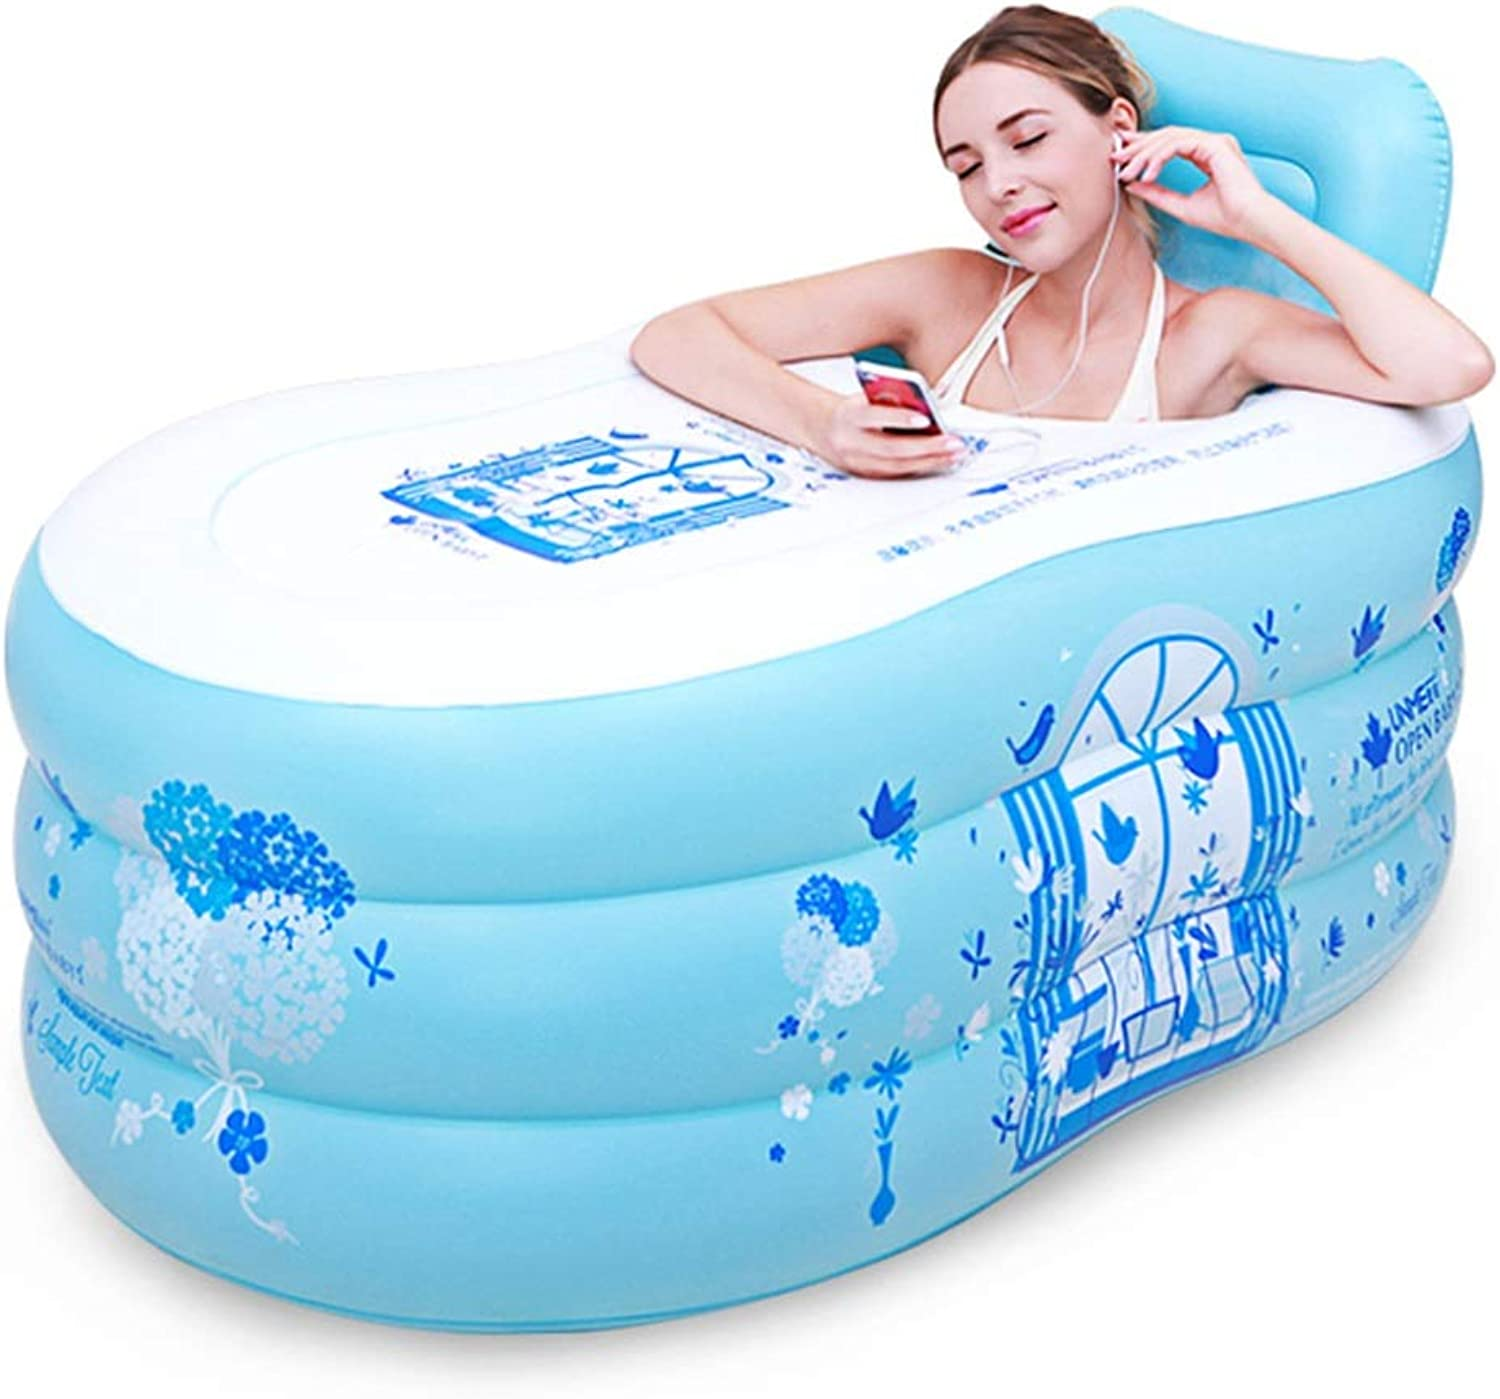 Meters Folding Inflatable Bathtub   Adult Bath Barrel Thickening Plastic Bathtub with Backrest, Sit & Lie Down - for Indoor, Outdoor Use